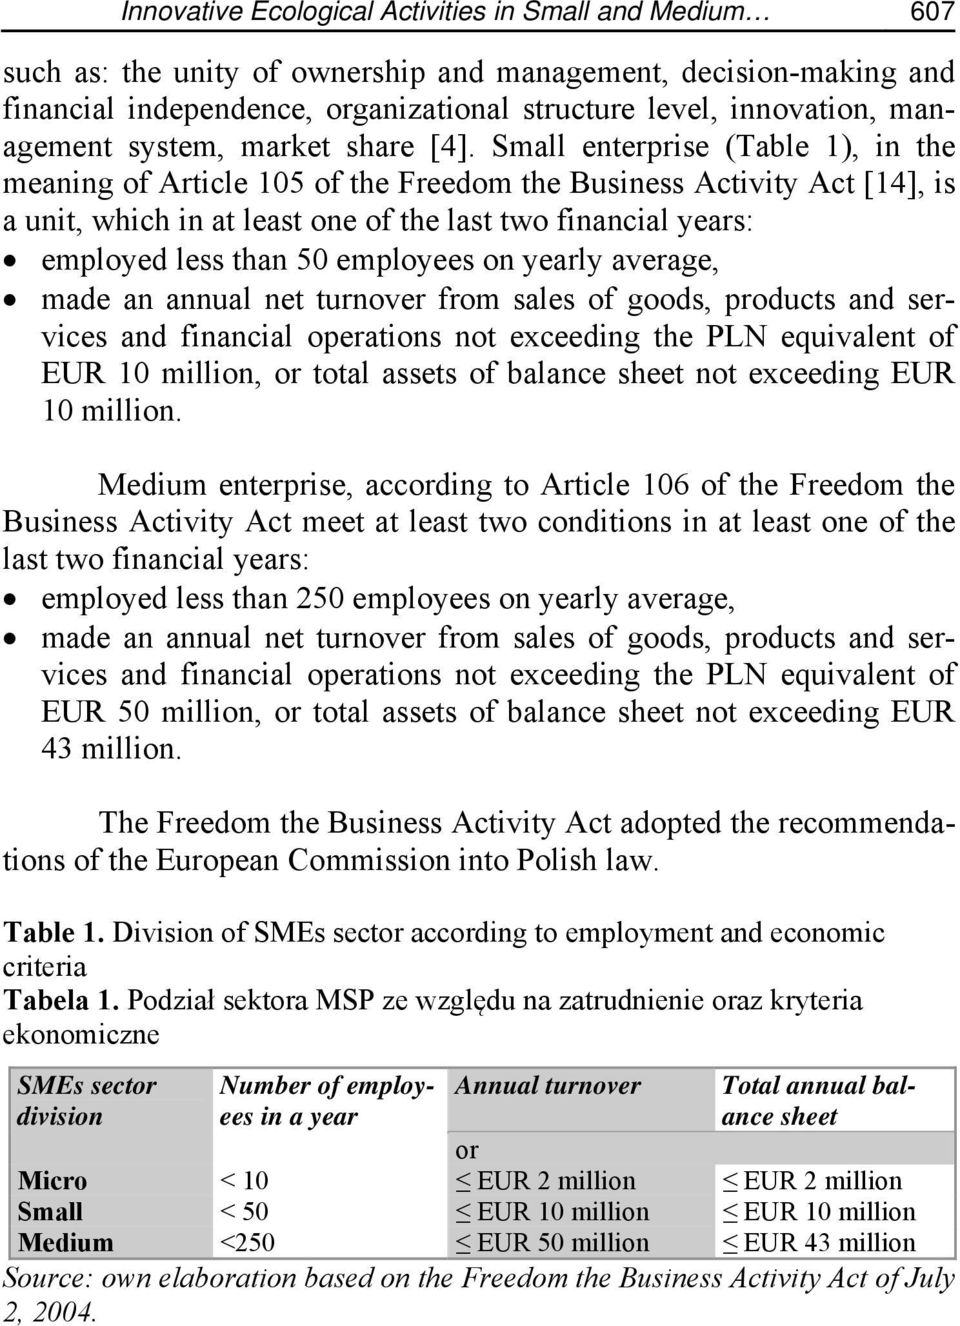 Small enterprise (Table 1), in the meaning of Article 105 of the Freedom the Business Activity Act [14], is a unit, which in at least one of the last two financial years: employed less than 50